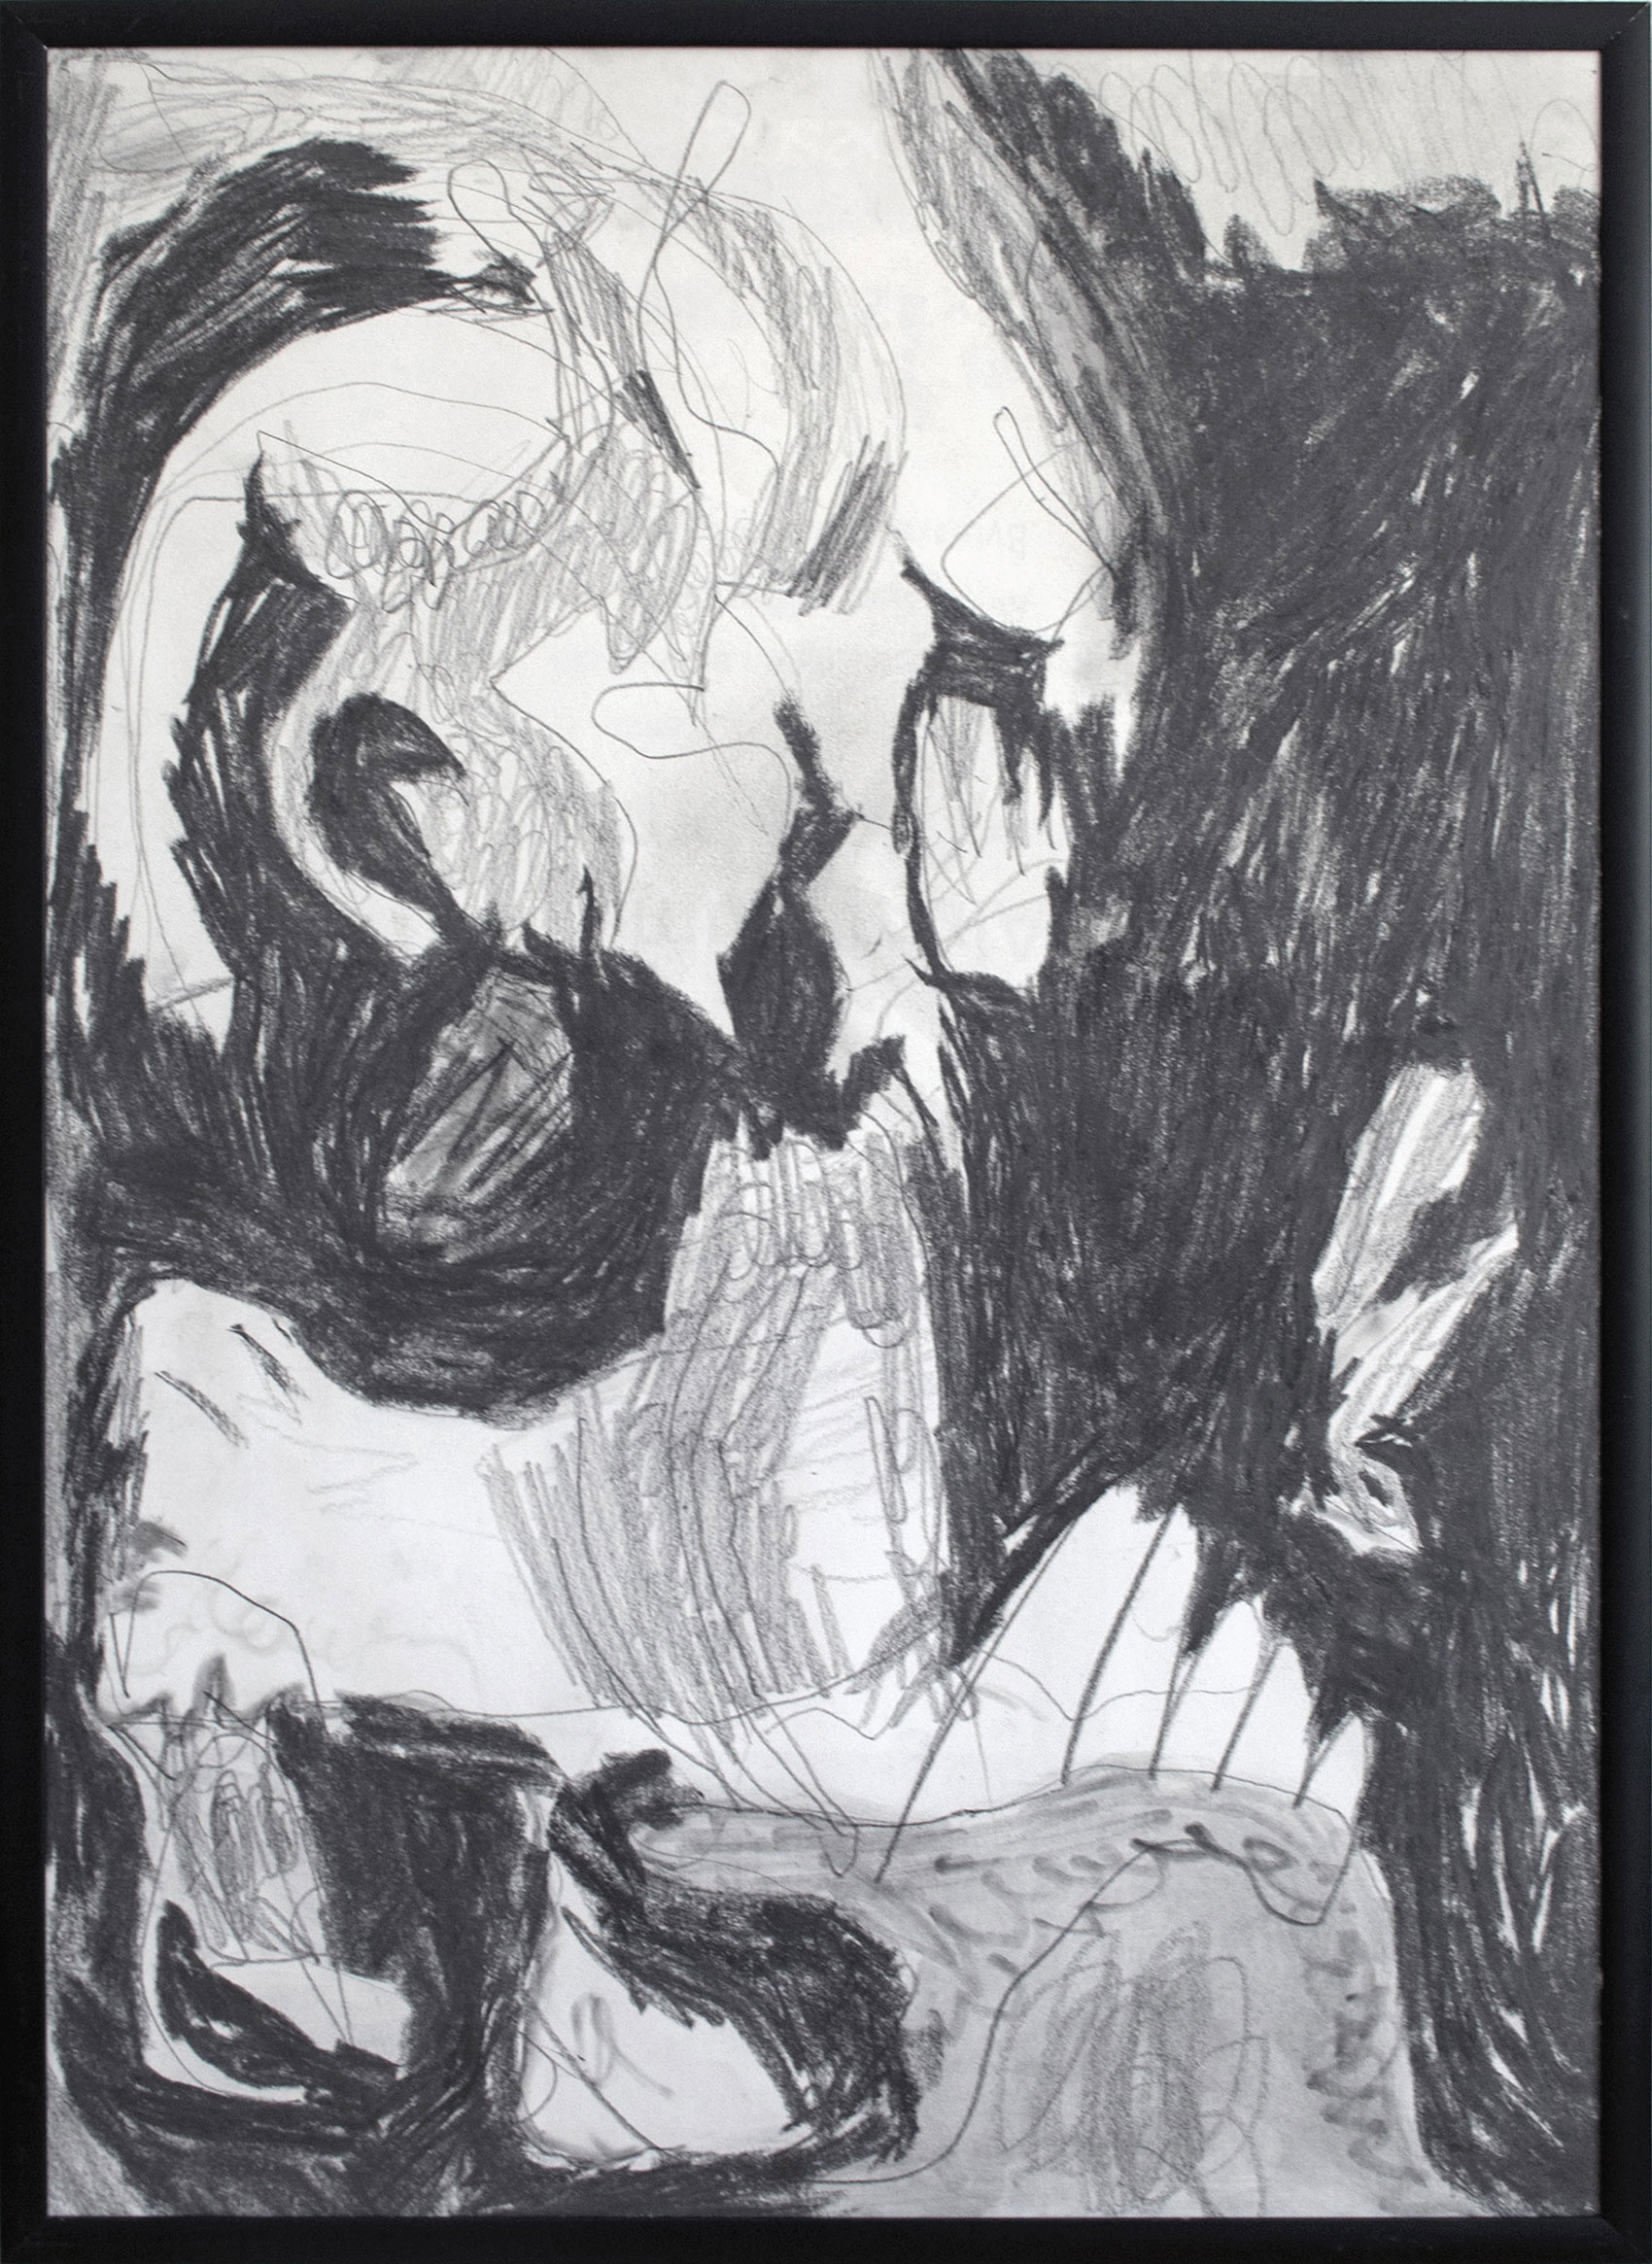 drawing about ethics and war, pencil, abstracted, artwork, contemporary art, marina stankovic, munchies art club, charcoal on paper